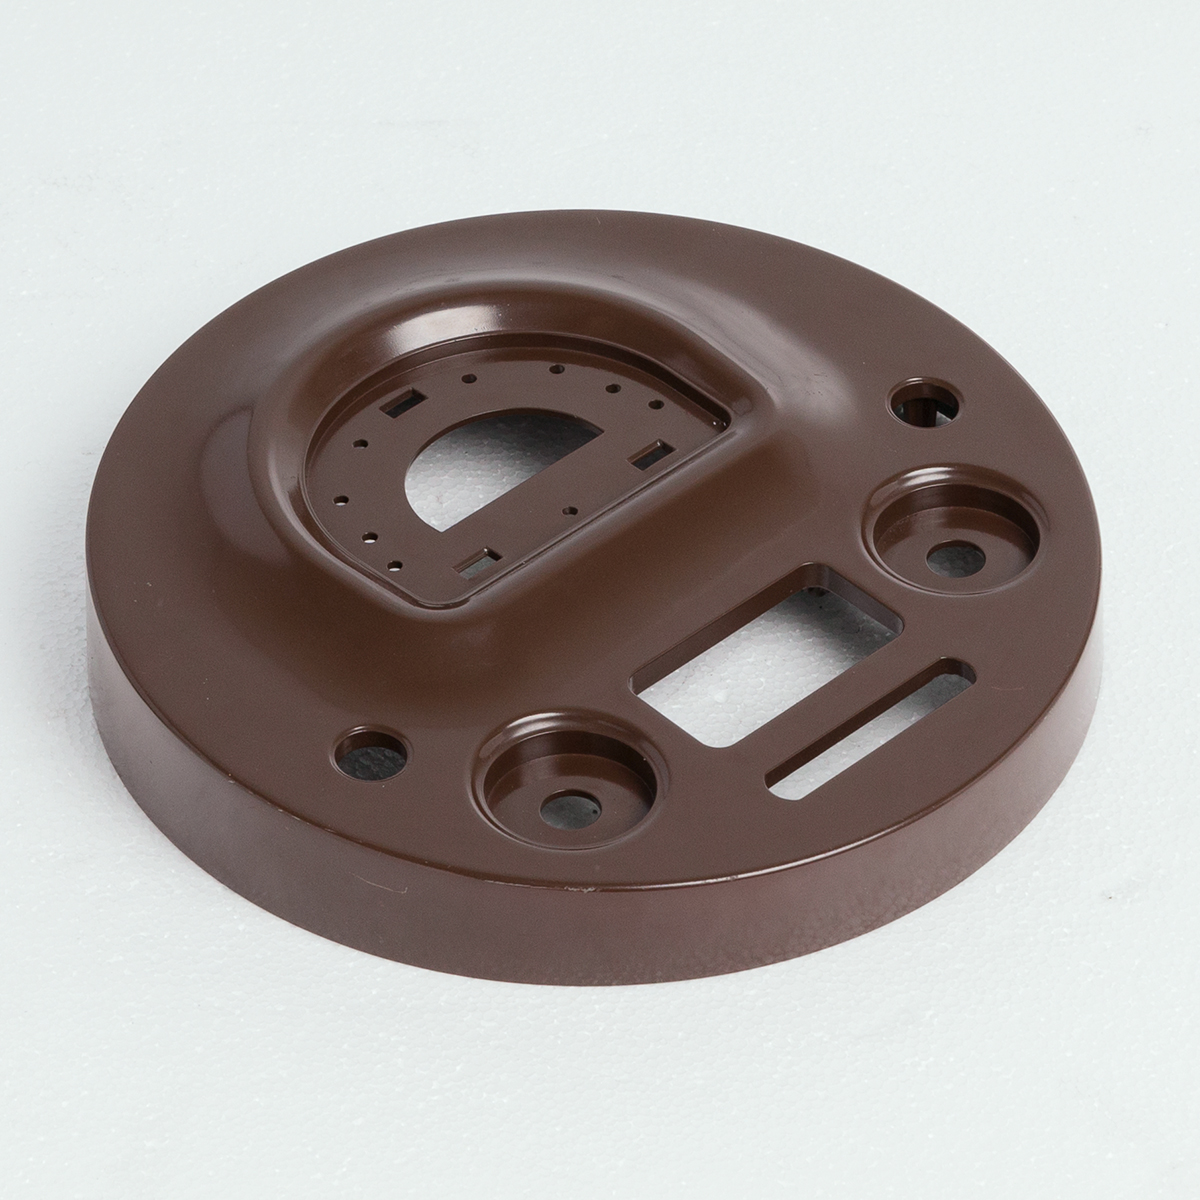 Table lamp die-casting Featured Image